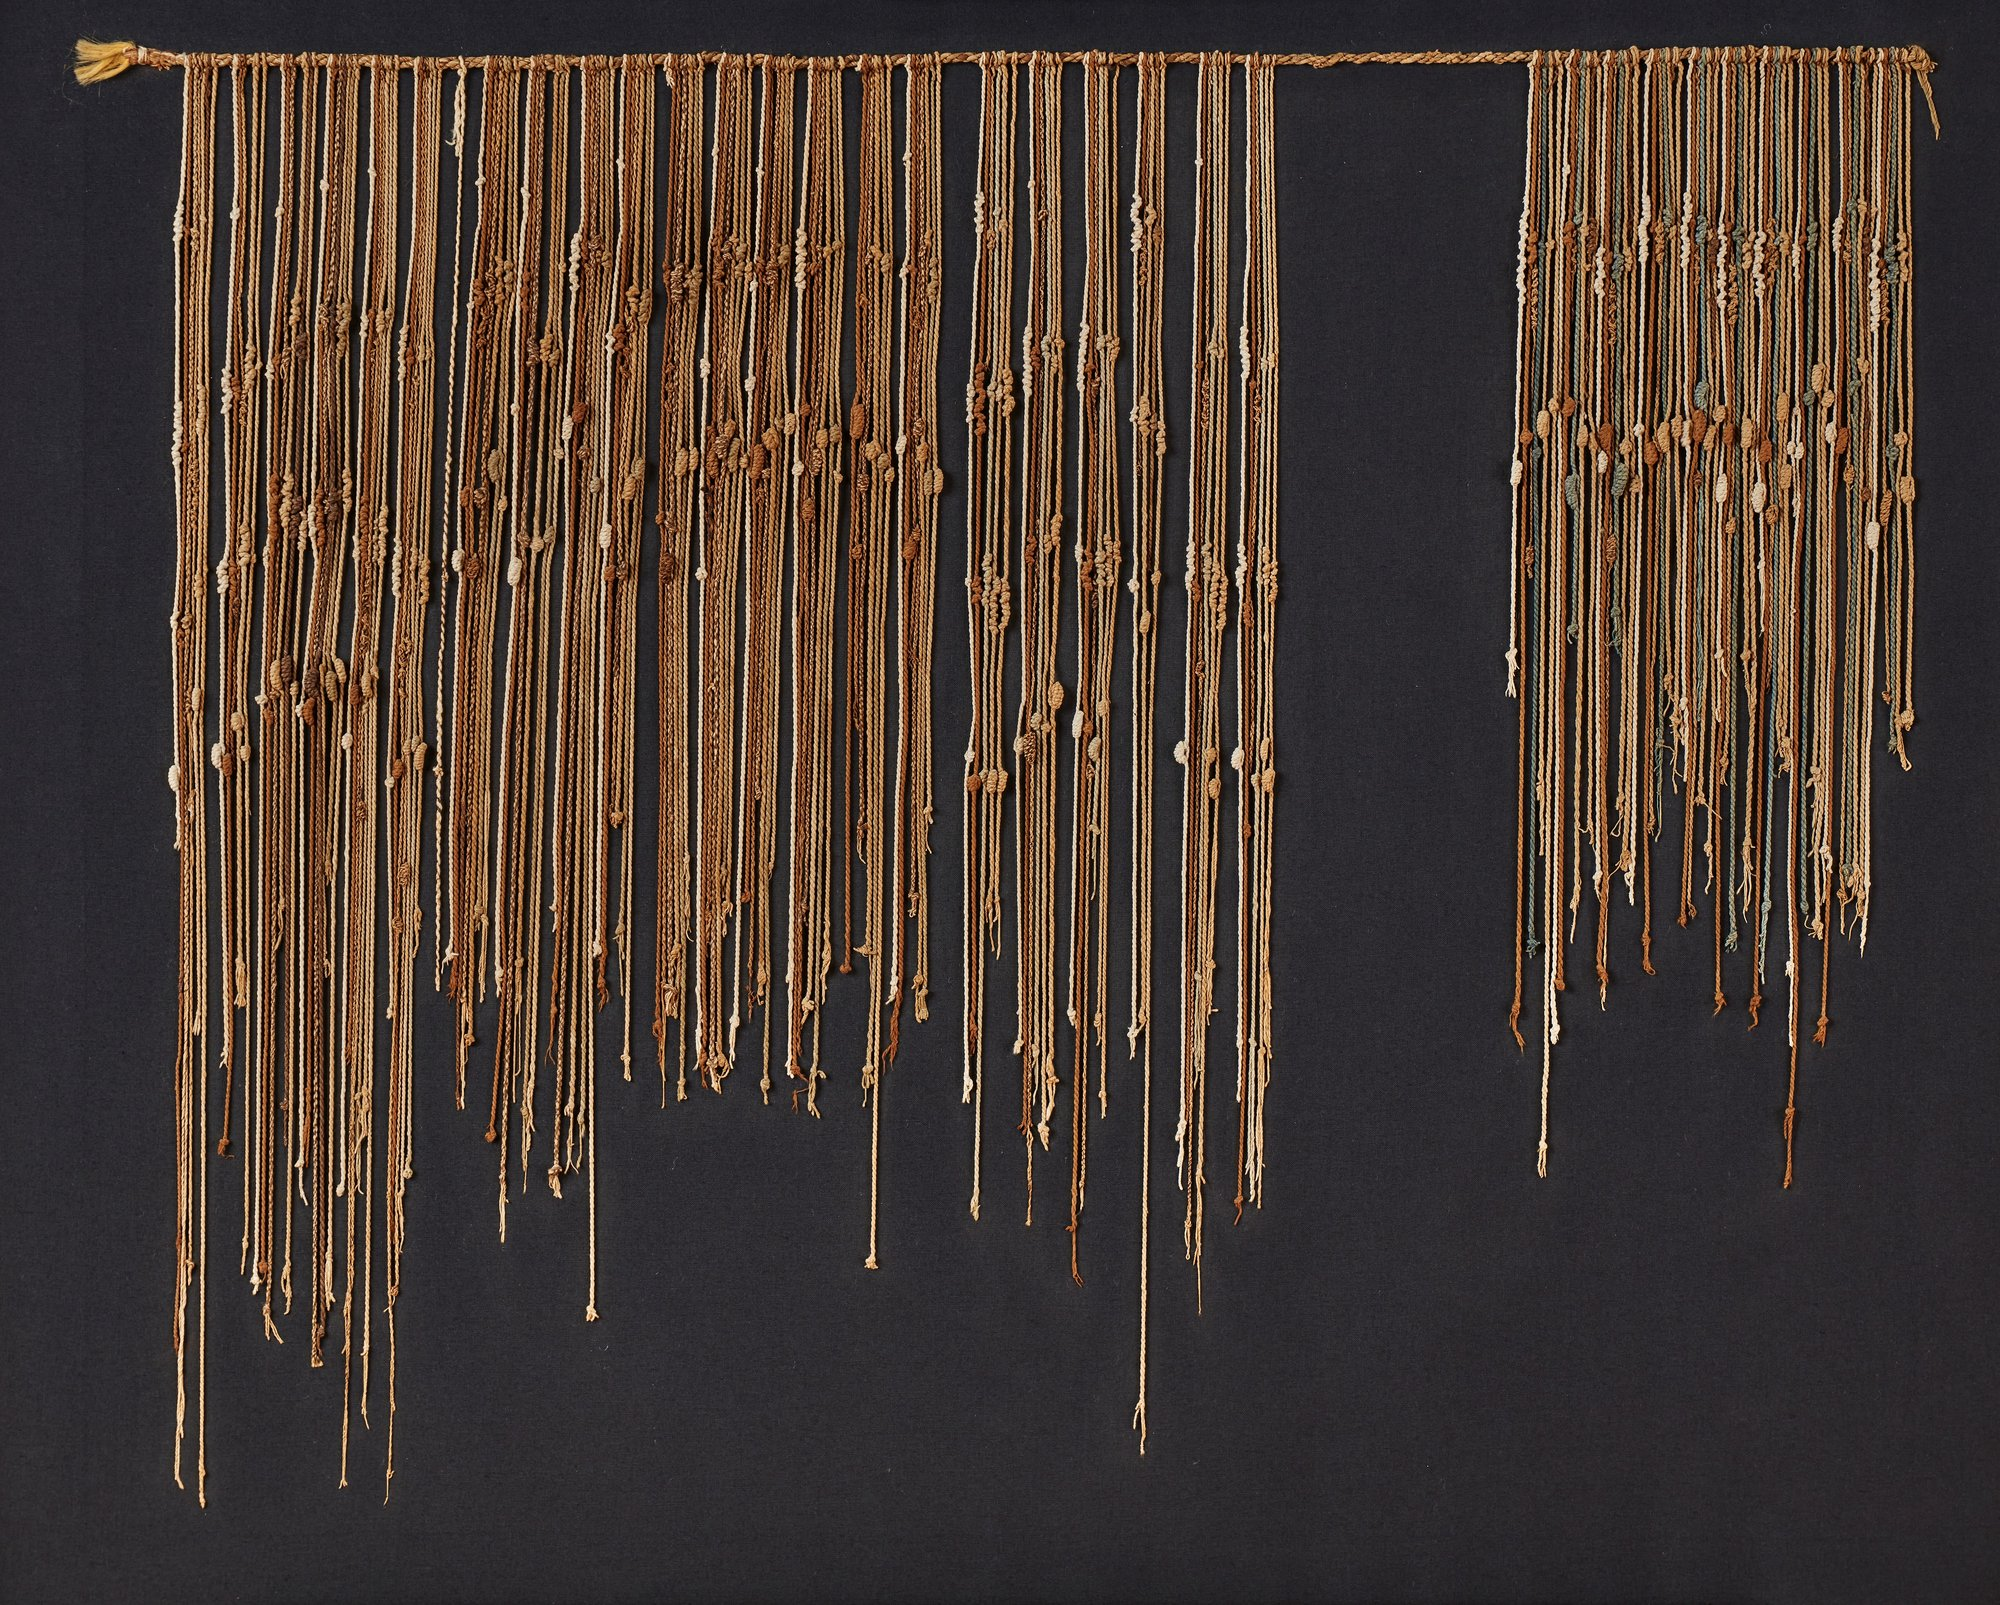 Explore the undeciphered writing of the Incas